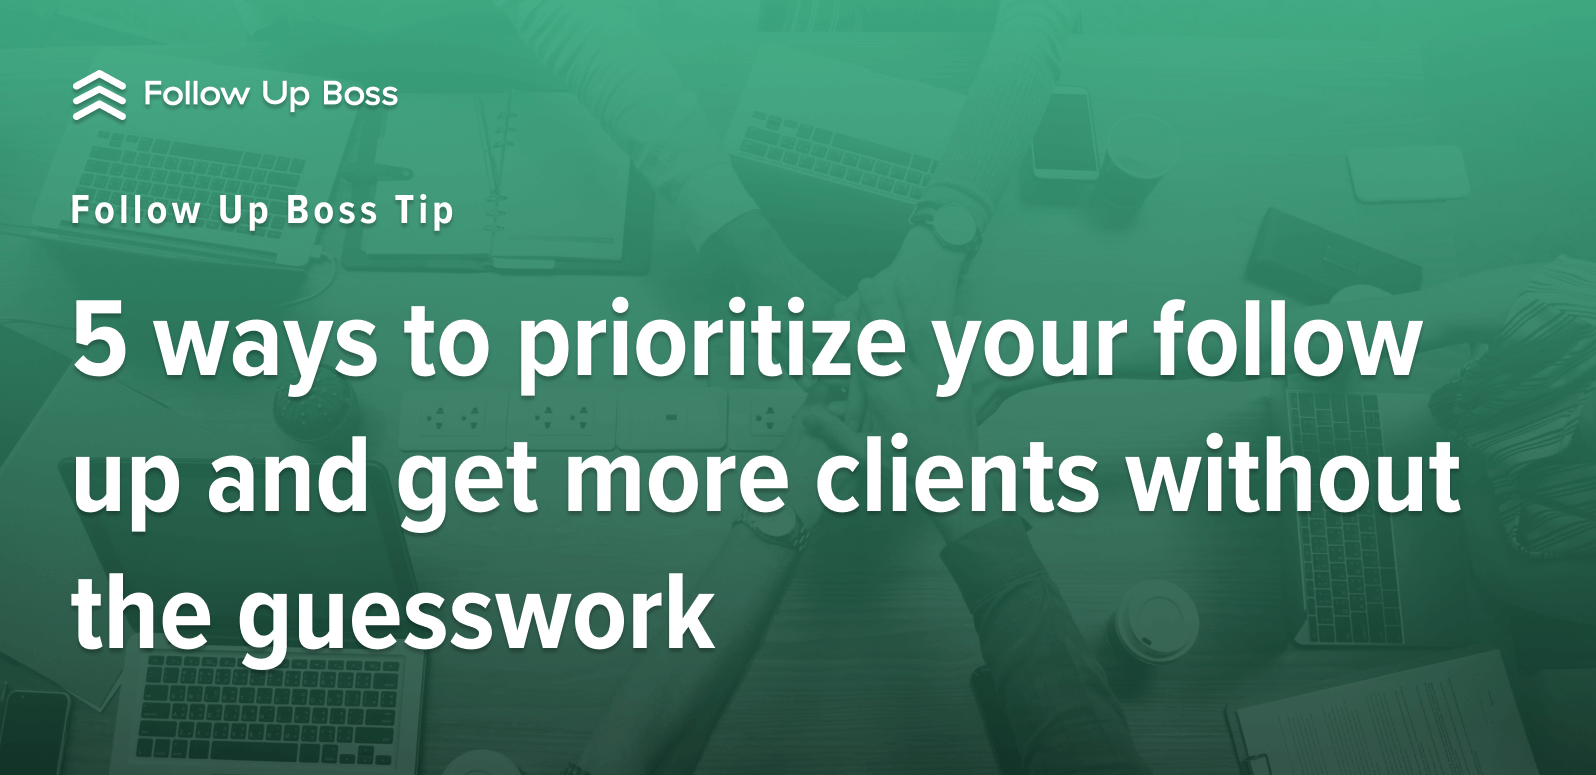 Follow Up Boss Tip: 5 ways to prioritize your follow up and get more clients without the guesswork